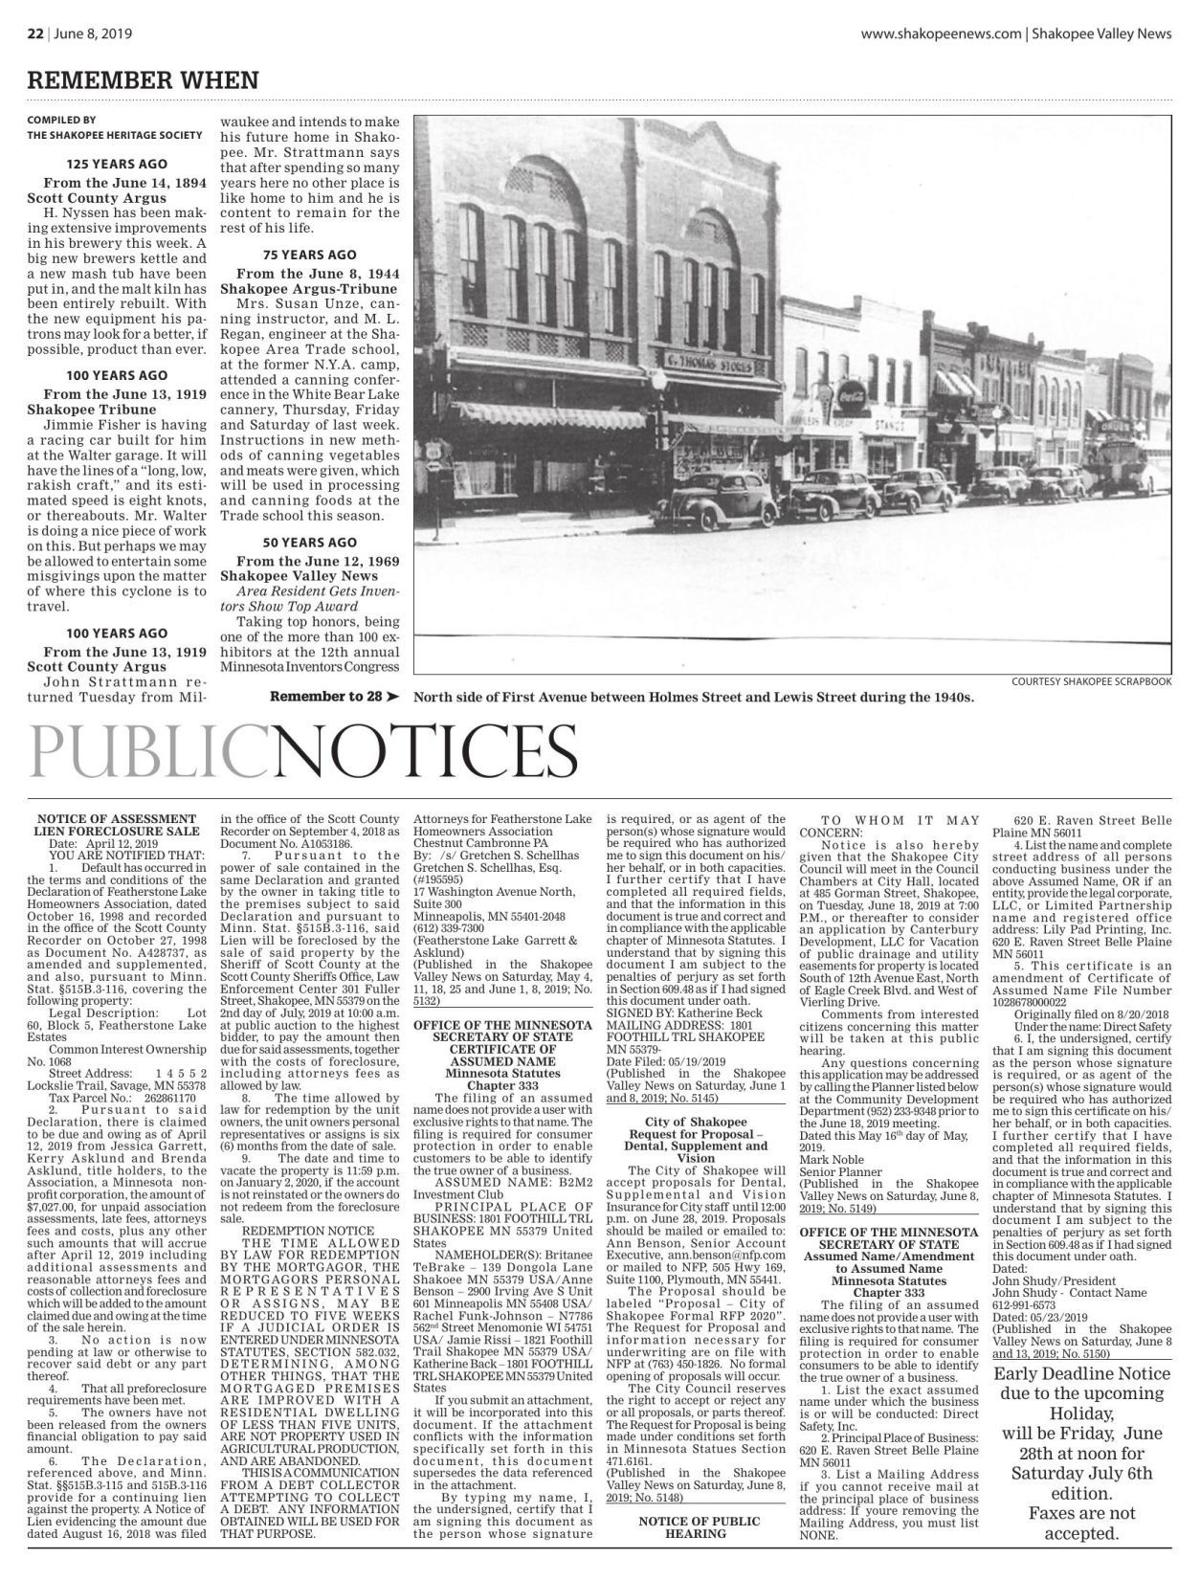 Public notices from the June 8, 2019 Shakopee Valley News